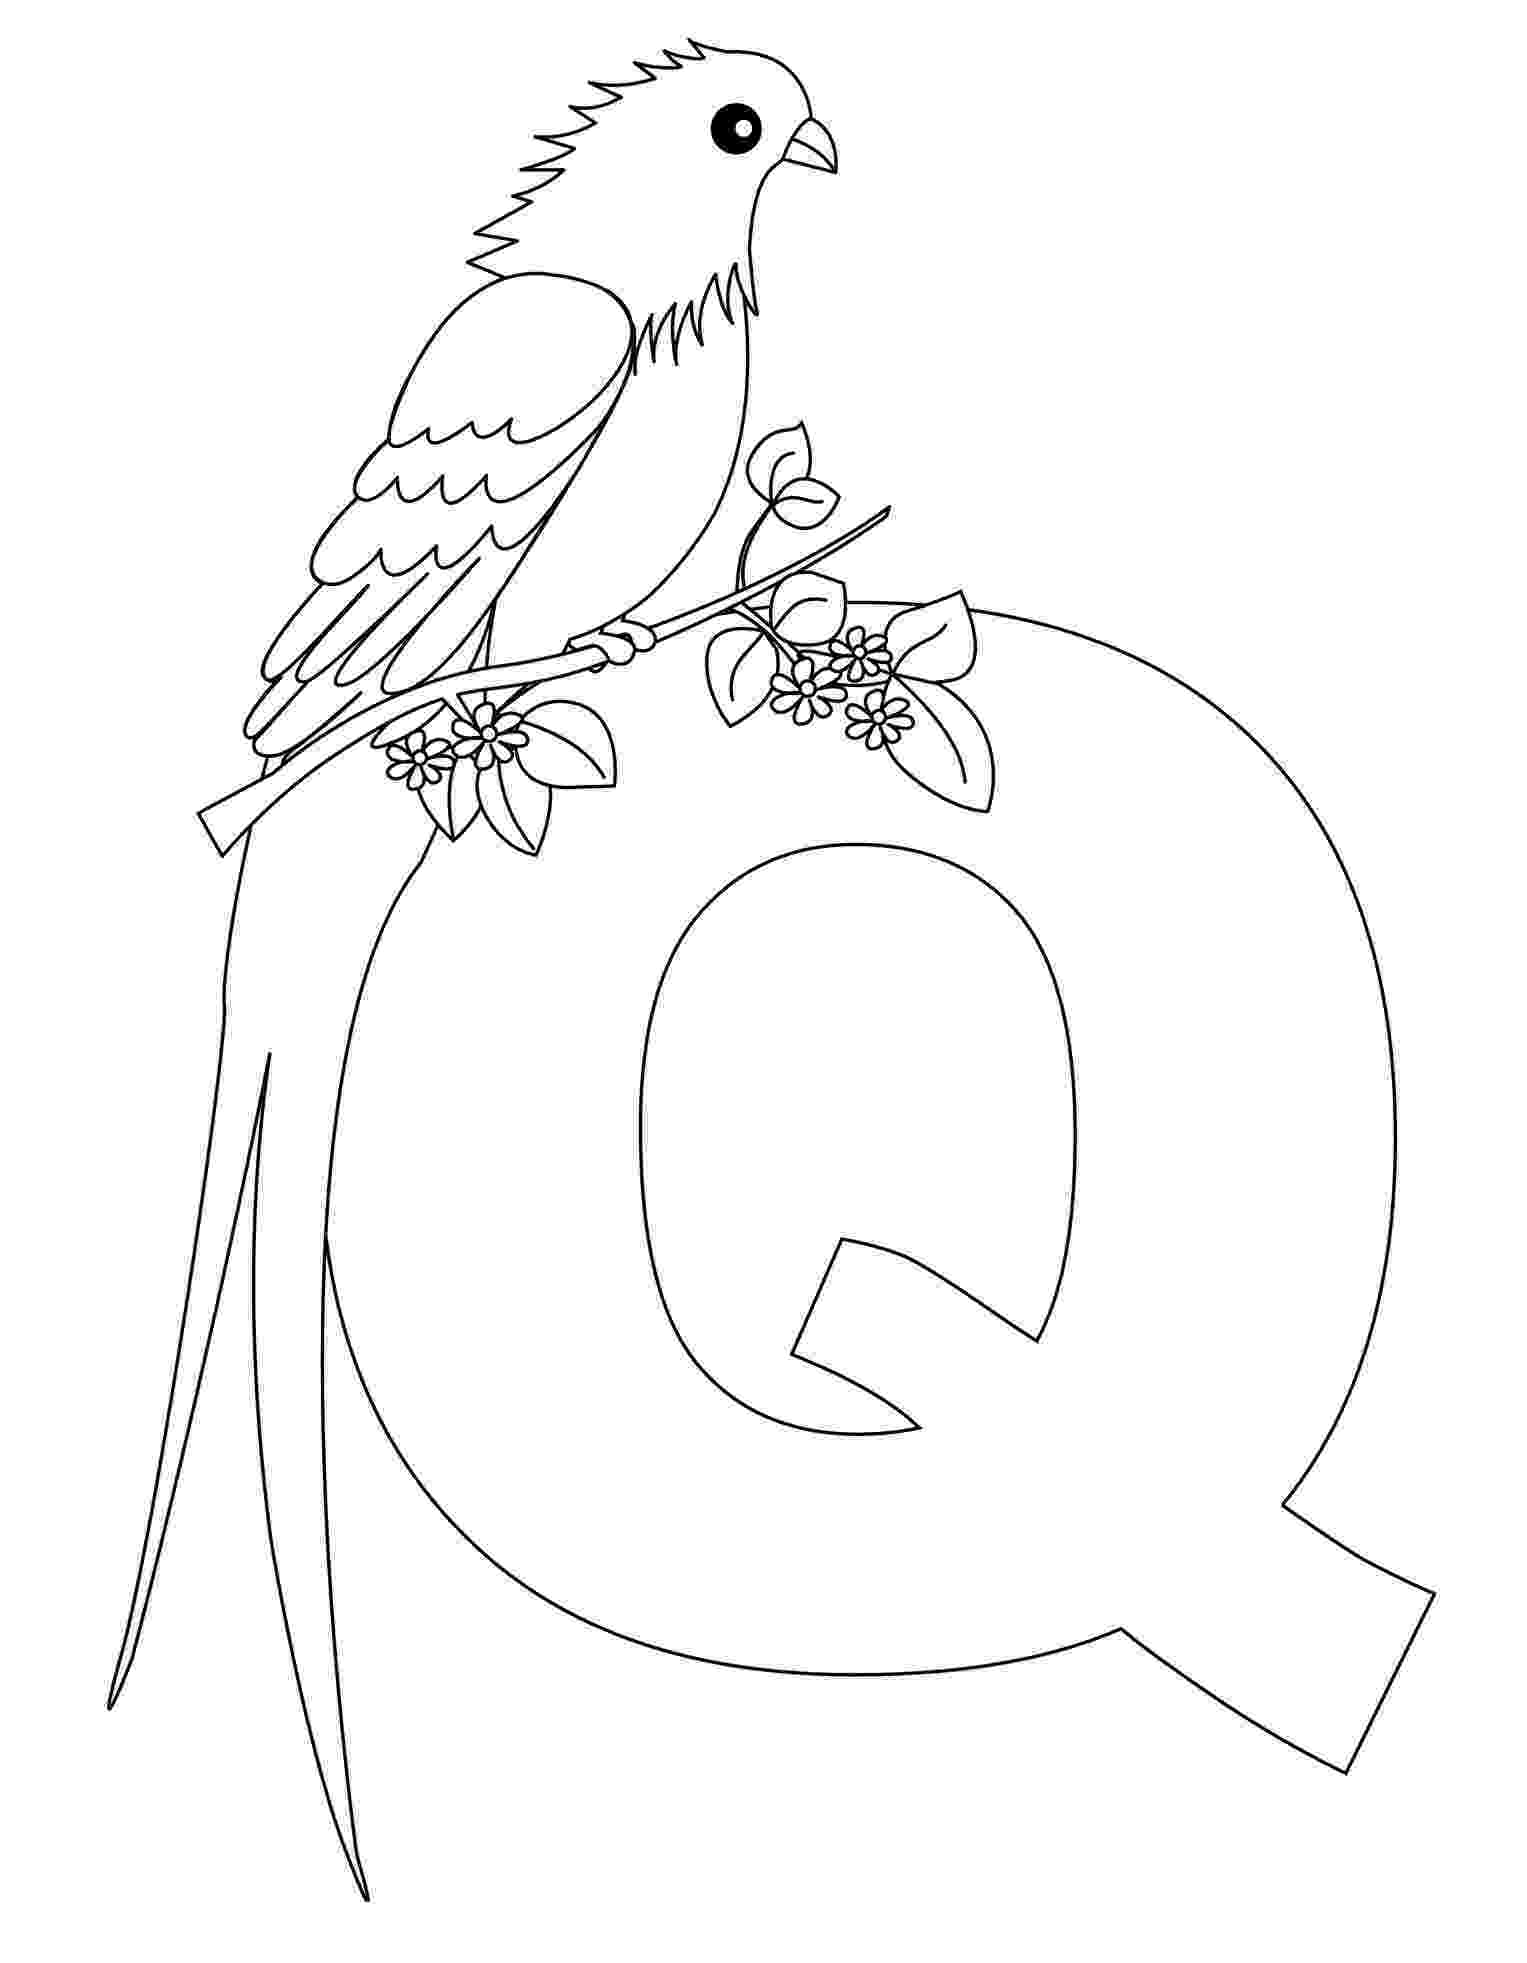 free alphabet coloring pages letter n coloring pages to download and print for free alphabet free coloring pages